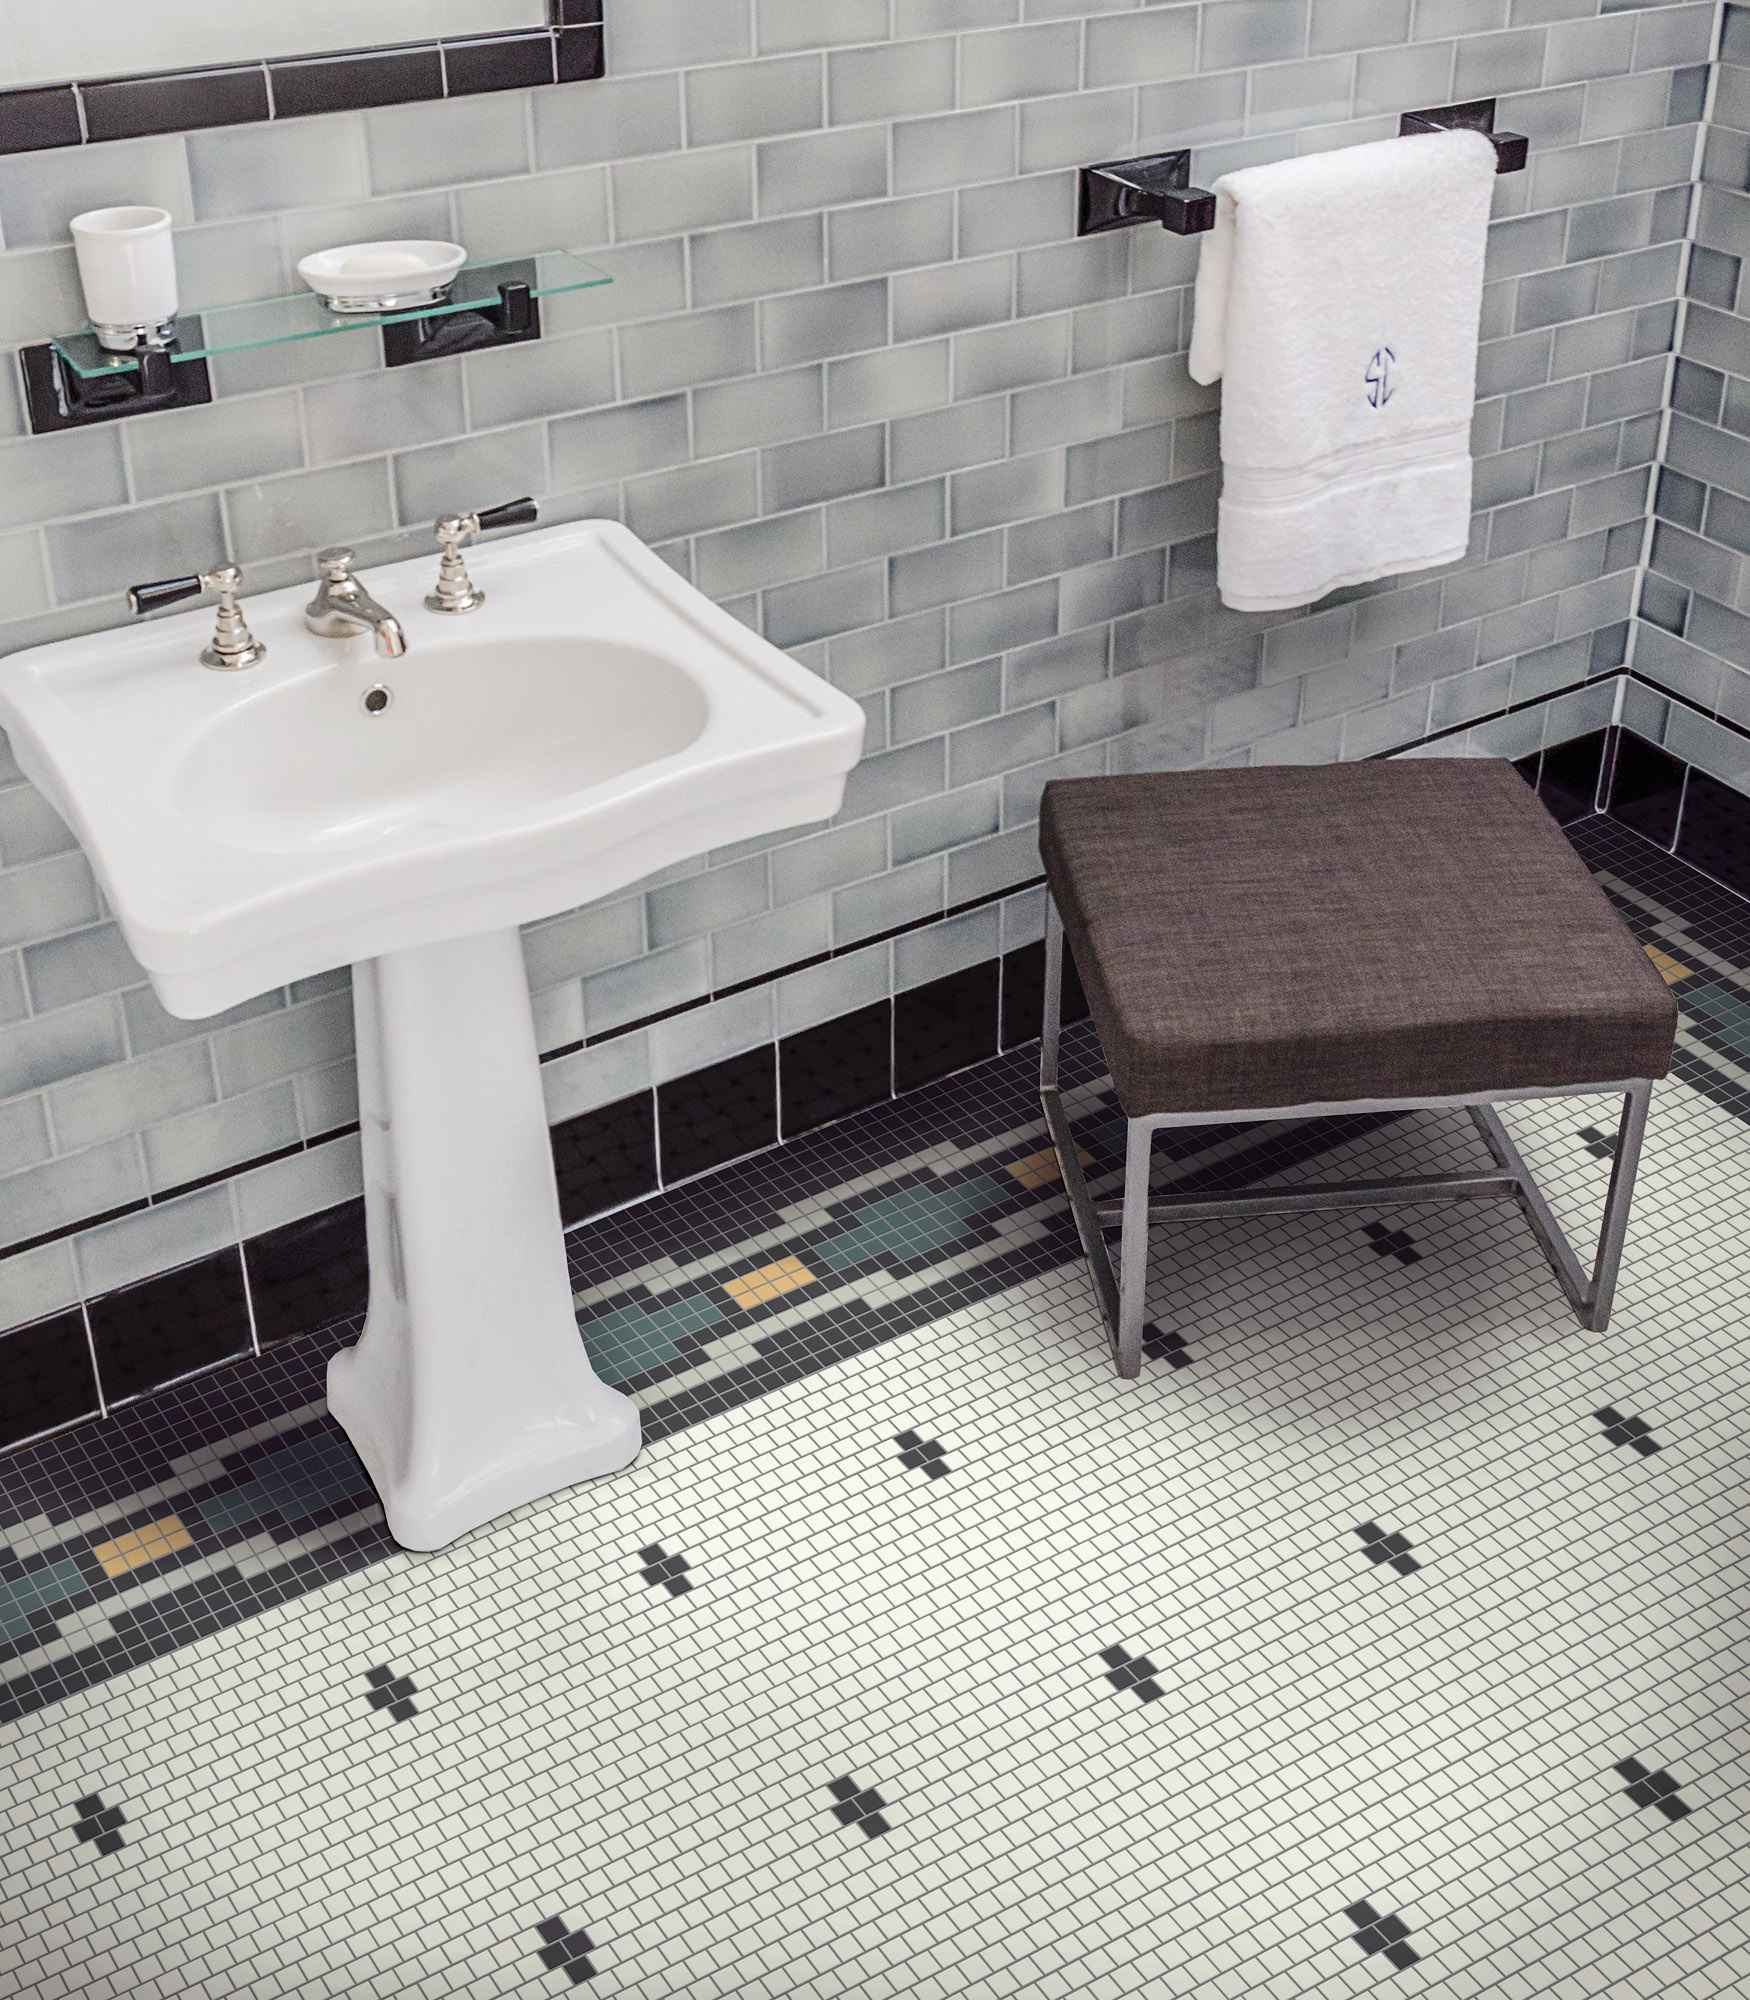 Bathroom floor tiles from Heritage Tile